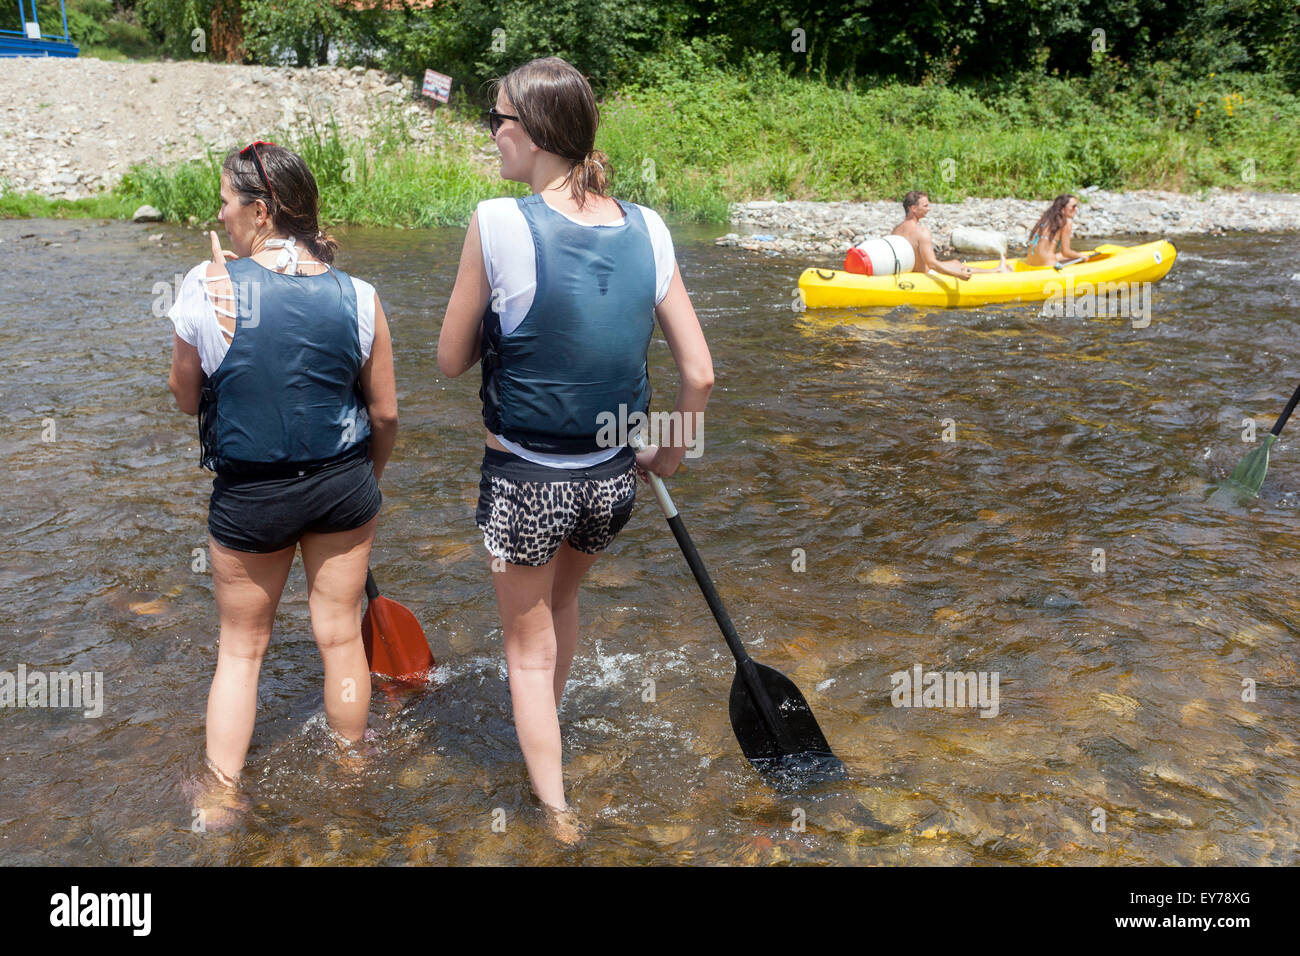 People going down by the river Vltava, canoeing, two girls, South Bohemia, Czech Republic - Stock Image